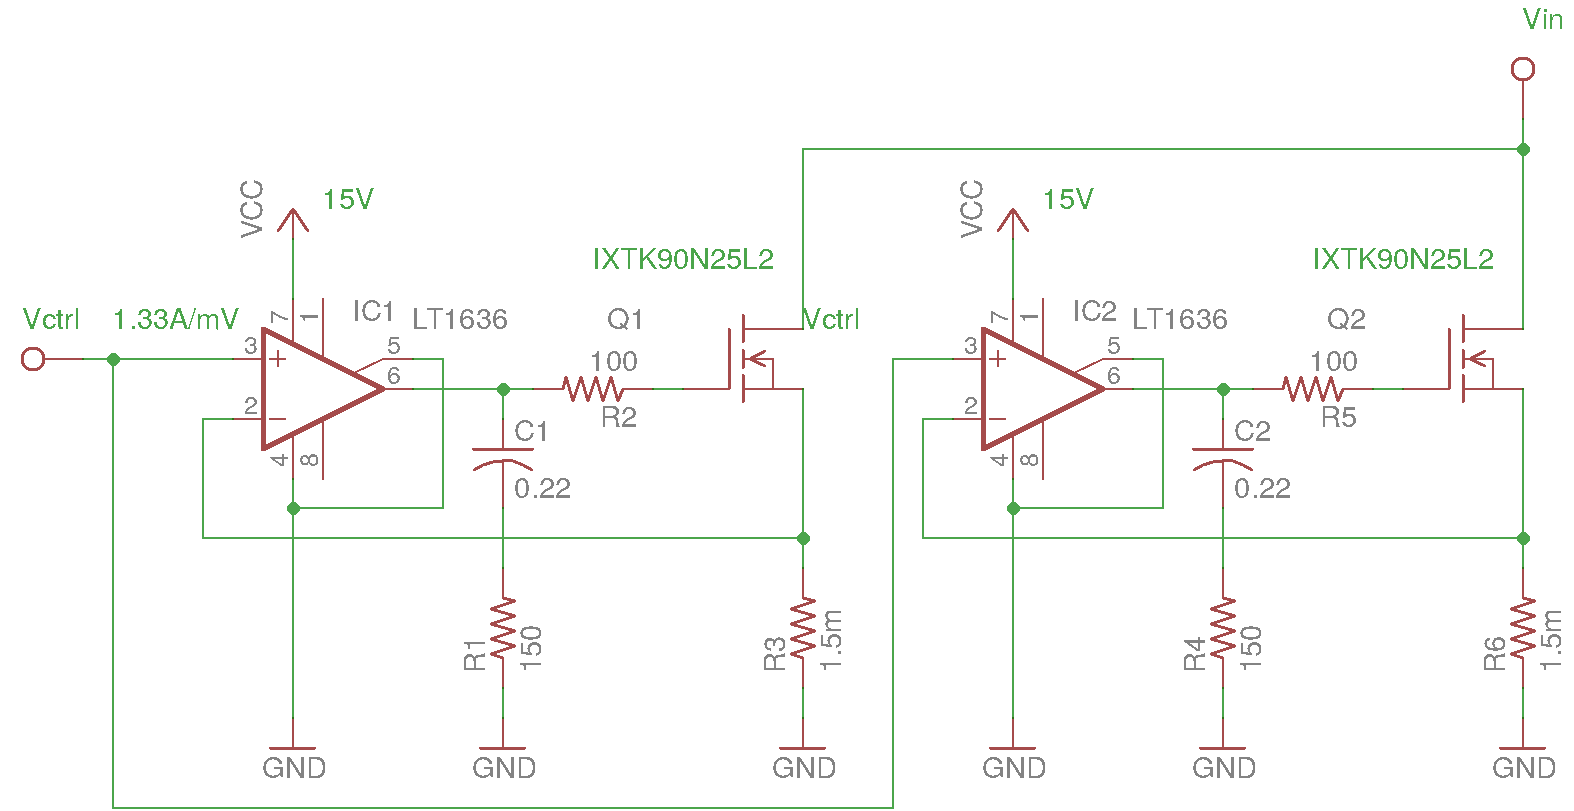 Can Someone Explain This Dc Load Circuit Page 1 Rc Integrator Relies On The Relative Low Bandwidth Of Lt1636 To Get Loop Stability Has A Gbw Product 220khz Also Lacks An